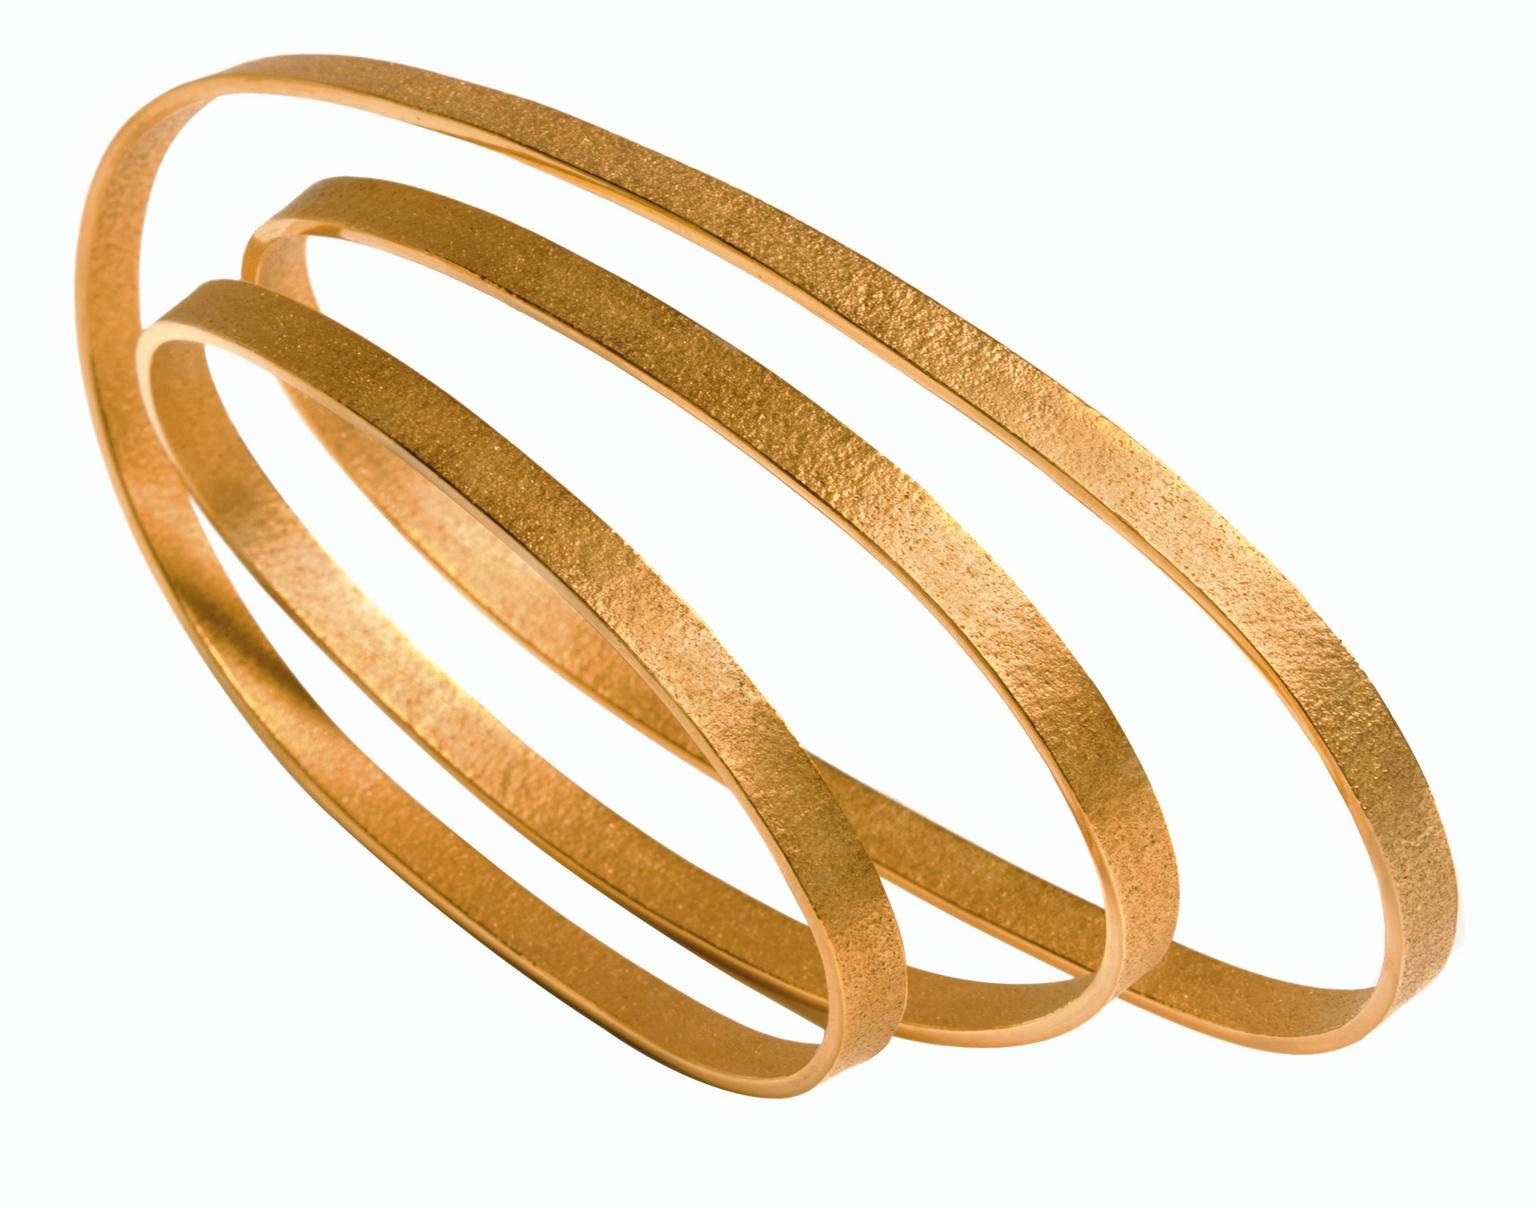 Ute Decker PURE minimalist bracelet in Fairtrade gold_20140131_Zoom